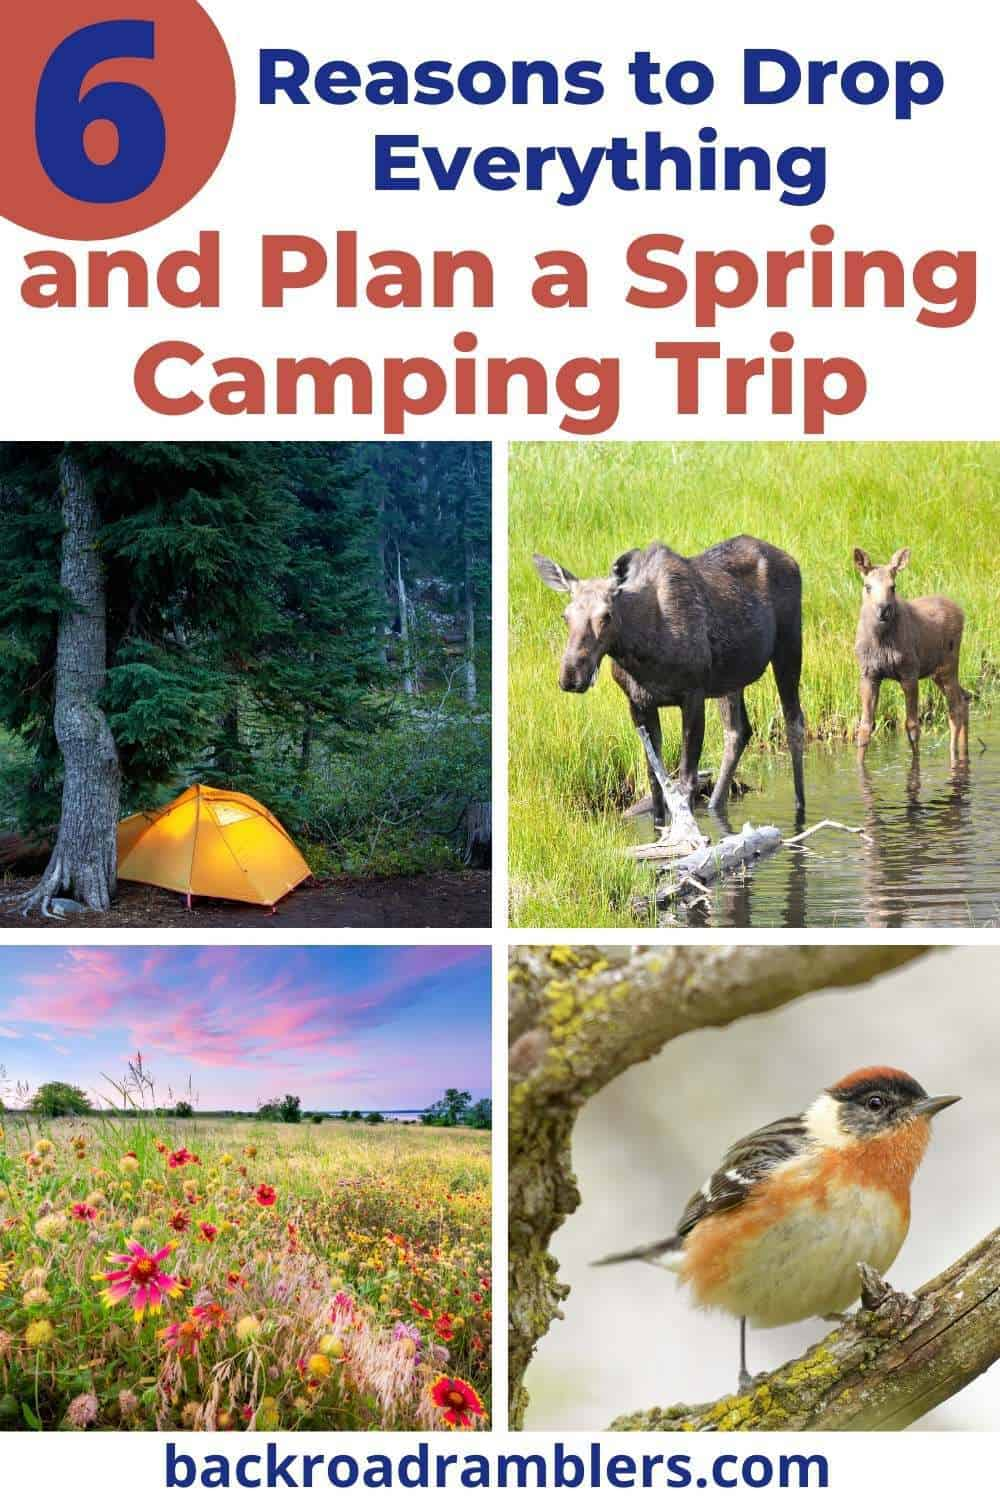 A collage of photos featuring a spring camping trip. Text overlay: 6 Reasons to Drop Everything and Plan a Spring Camping Trip.